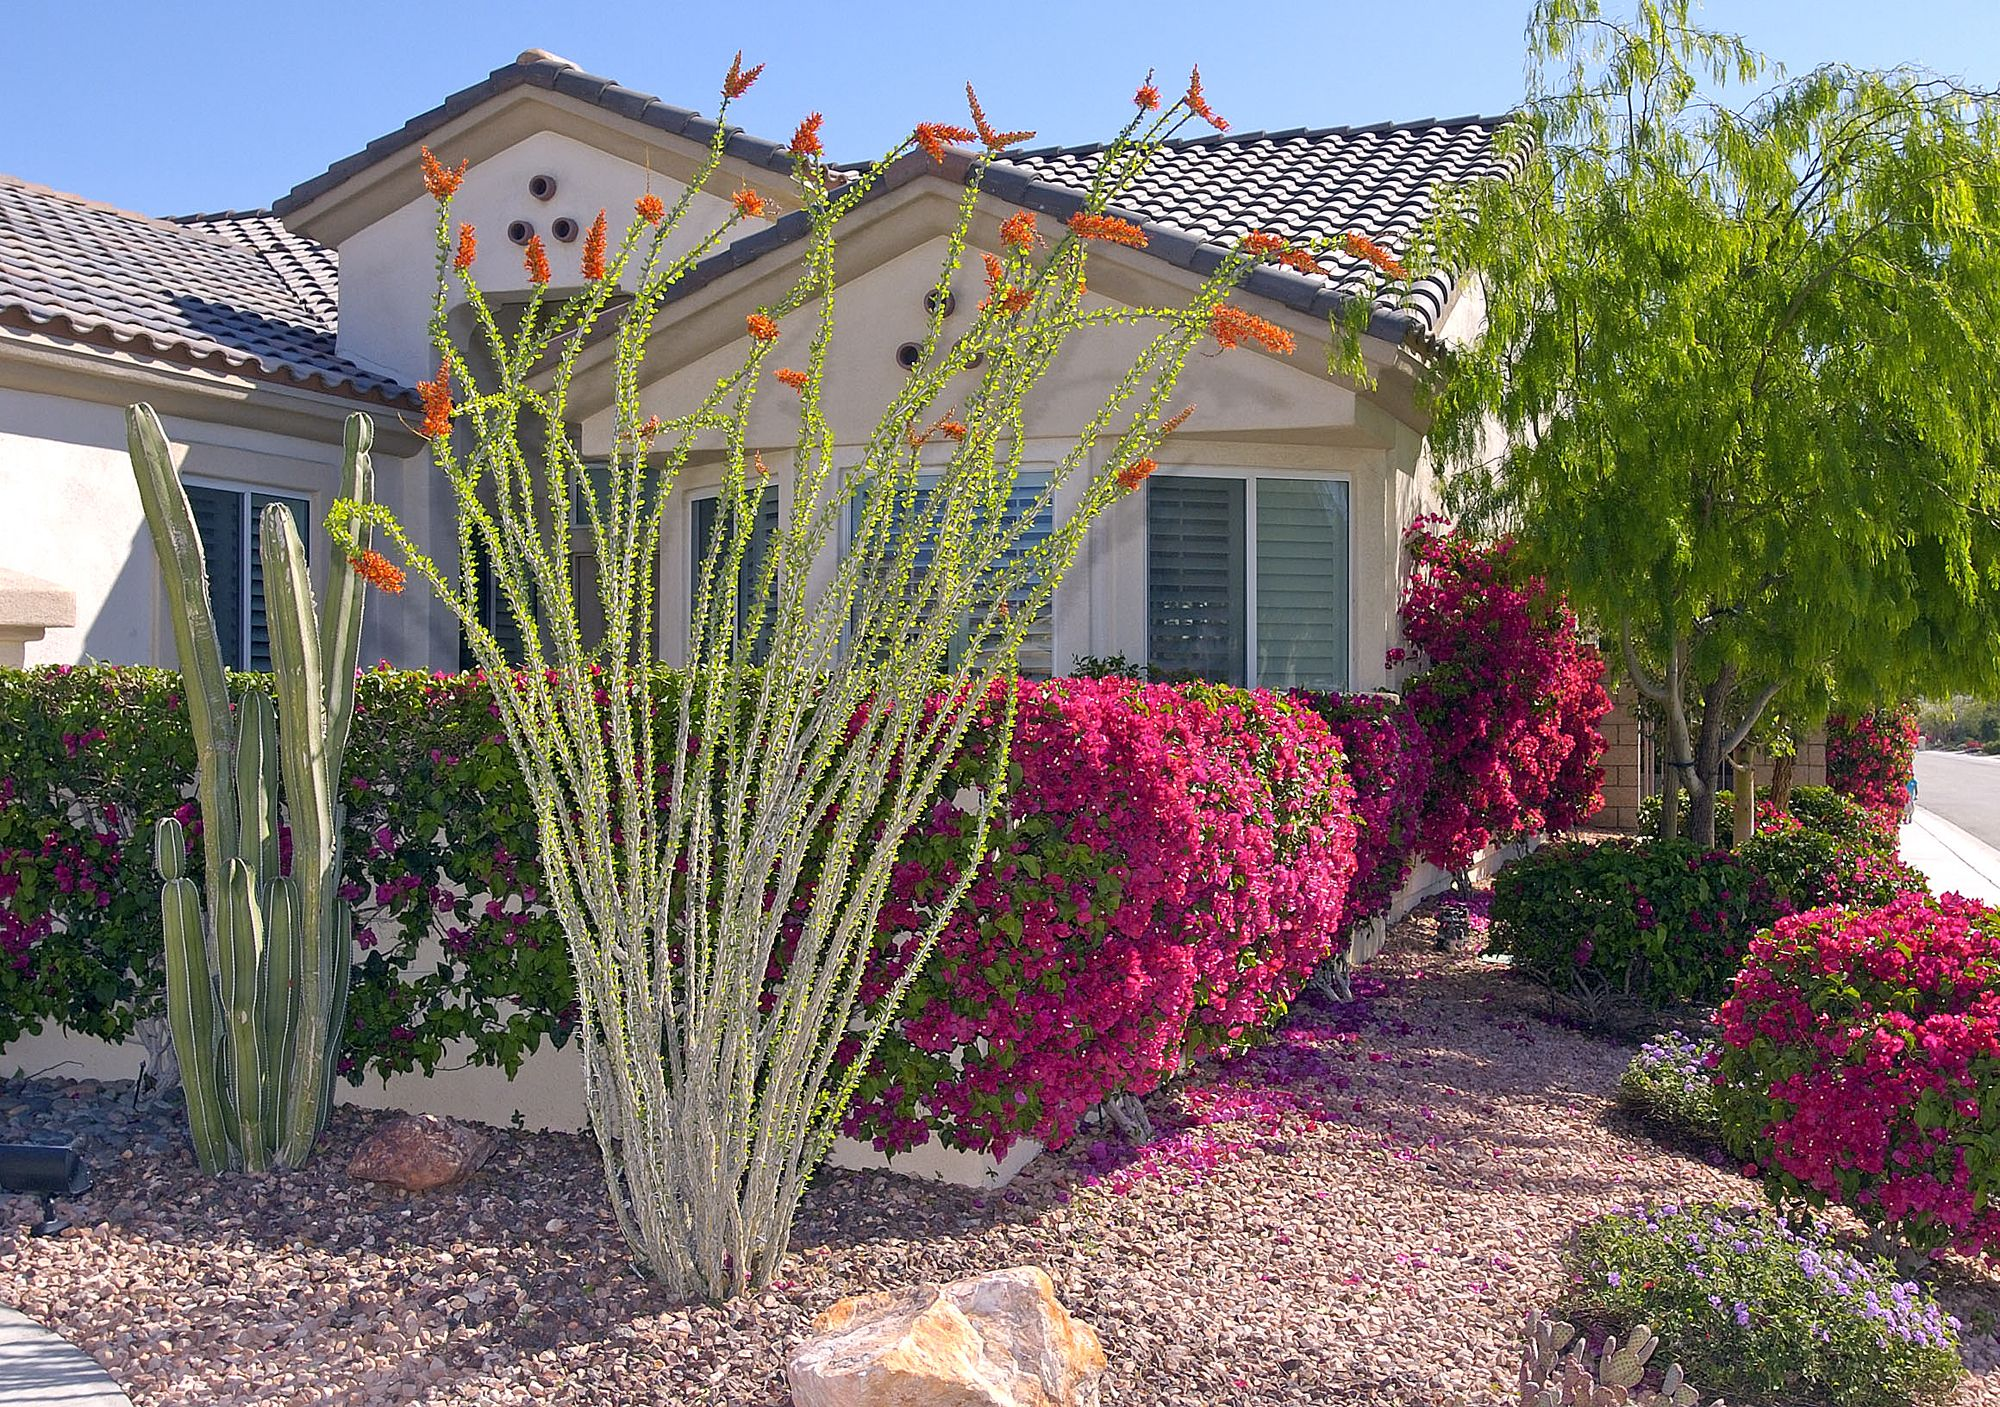 southwest desert landscaping ideas front yard